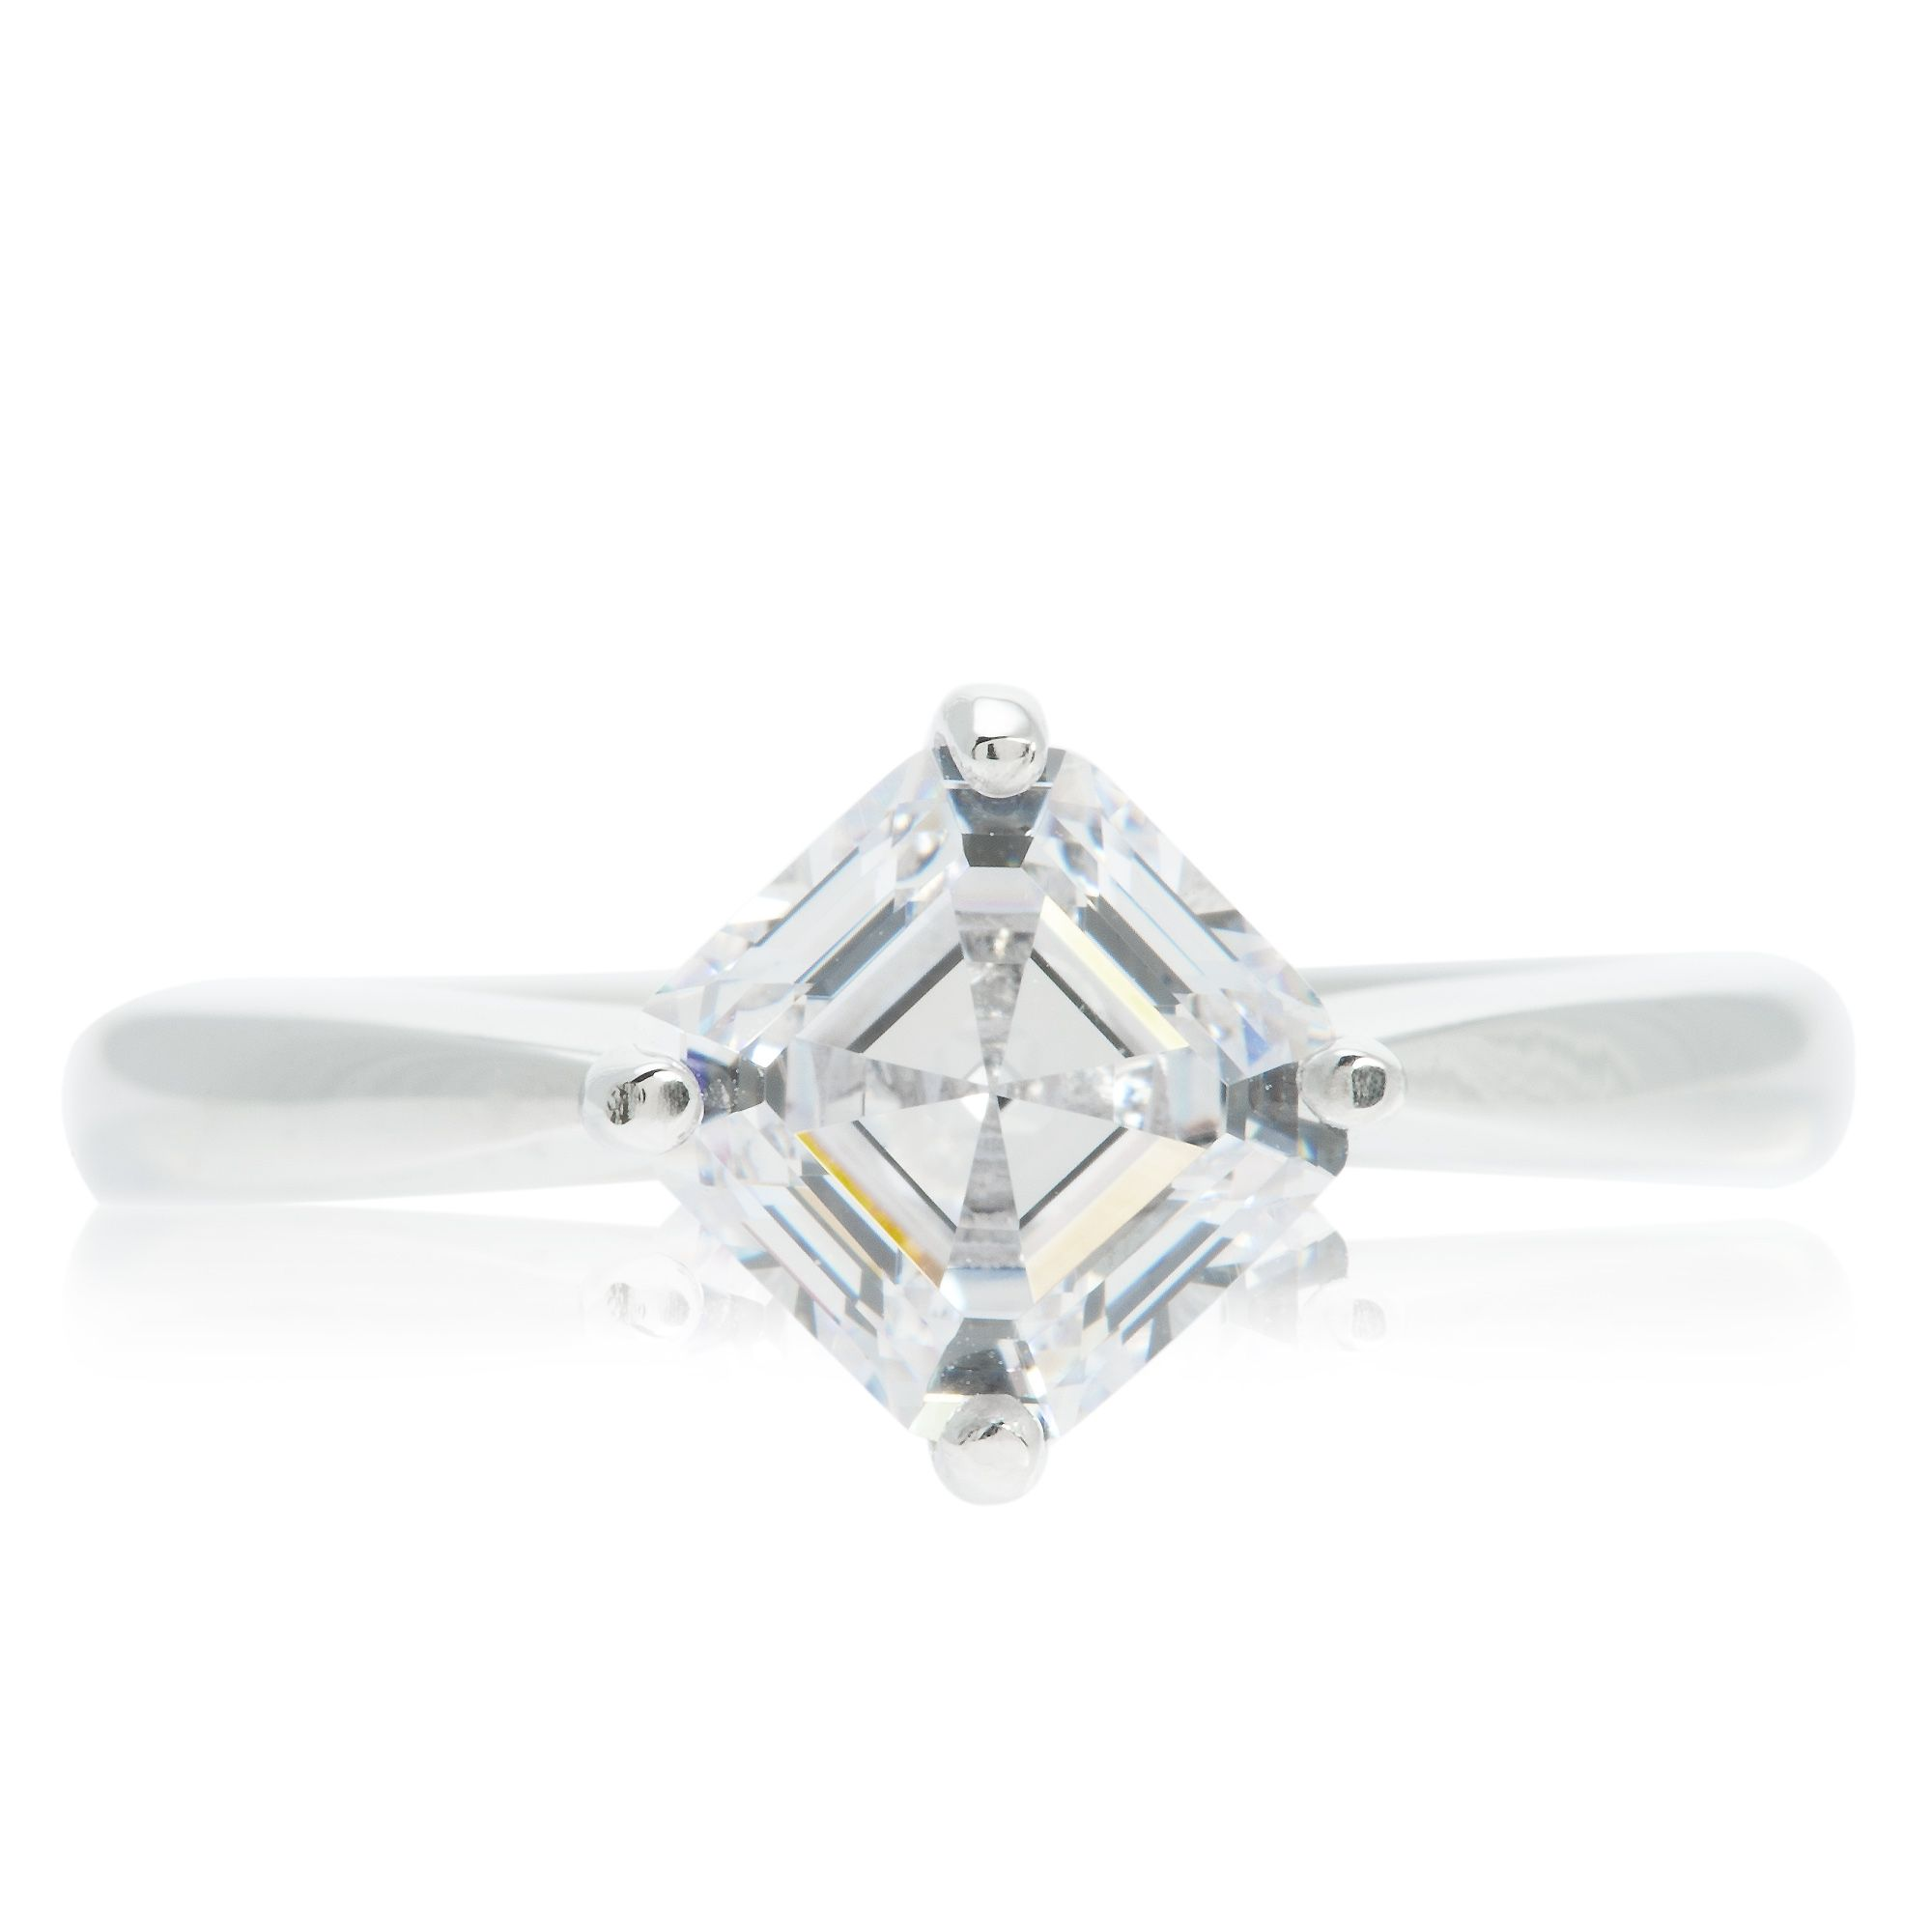 Qvc Stoneline Imagination Diamonique Anello Solitario Taglio Asscher Pari A 1 75ct